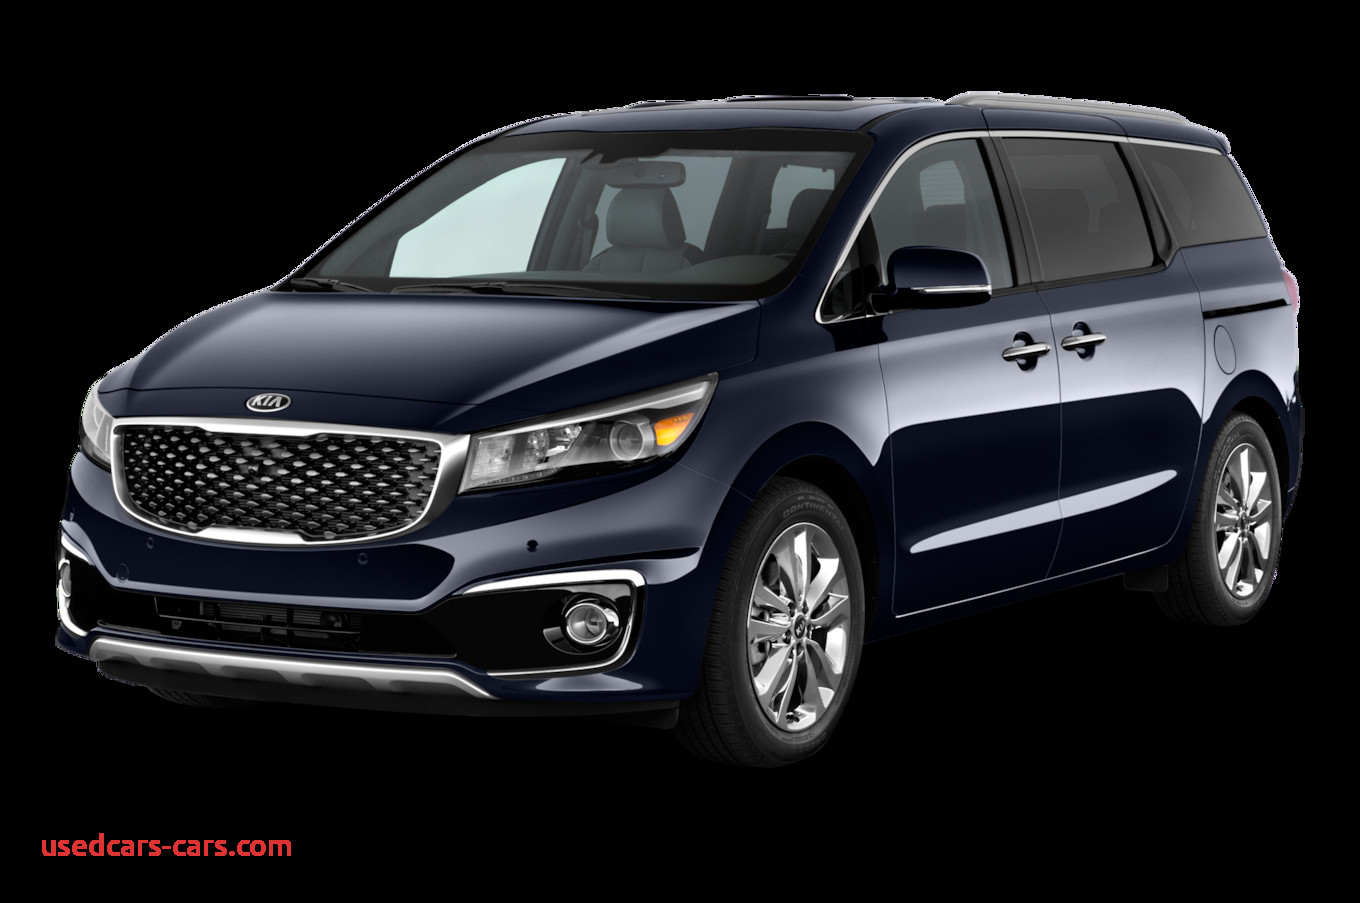 Kia Sedon New 2015 Kia Sedona Reviews and Rating Motor Trend